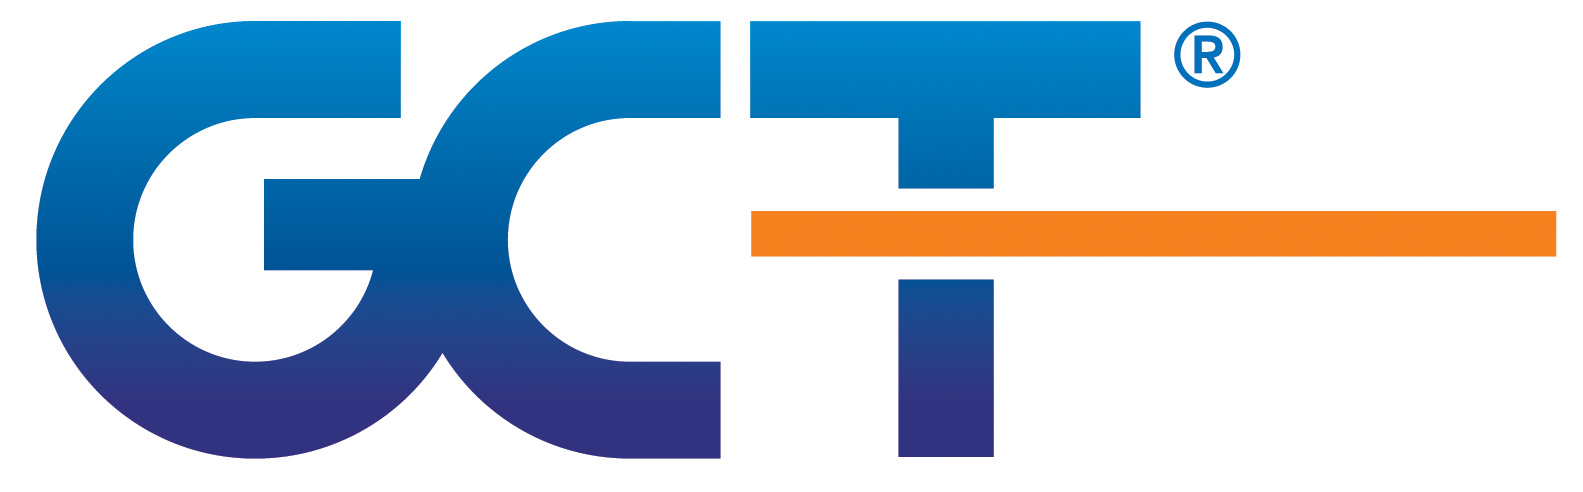 GCT Semiconductor's Multimode Cat-M1 IoT Chip Certified for